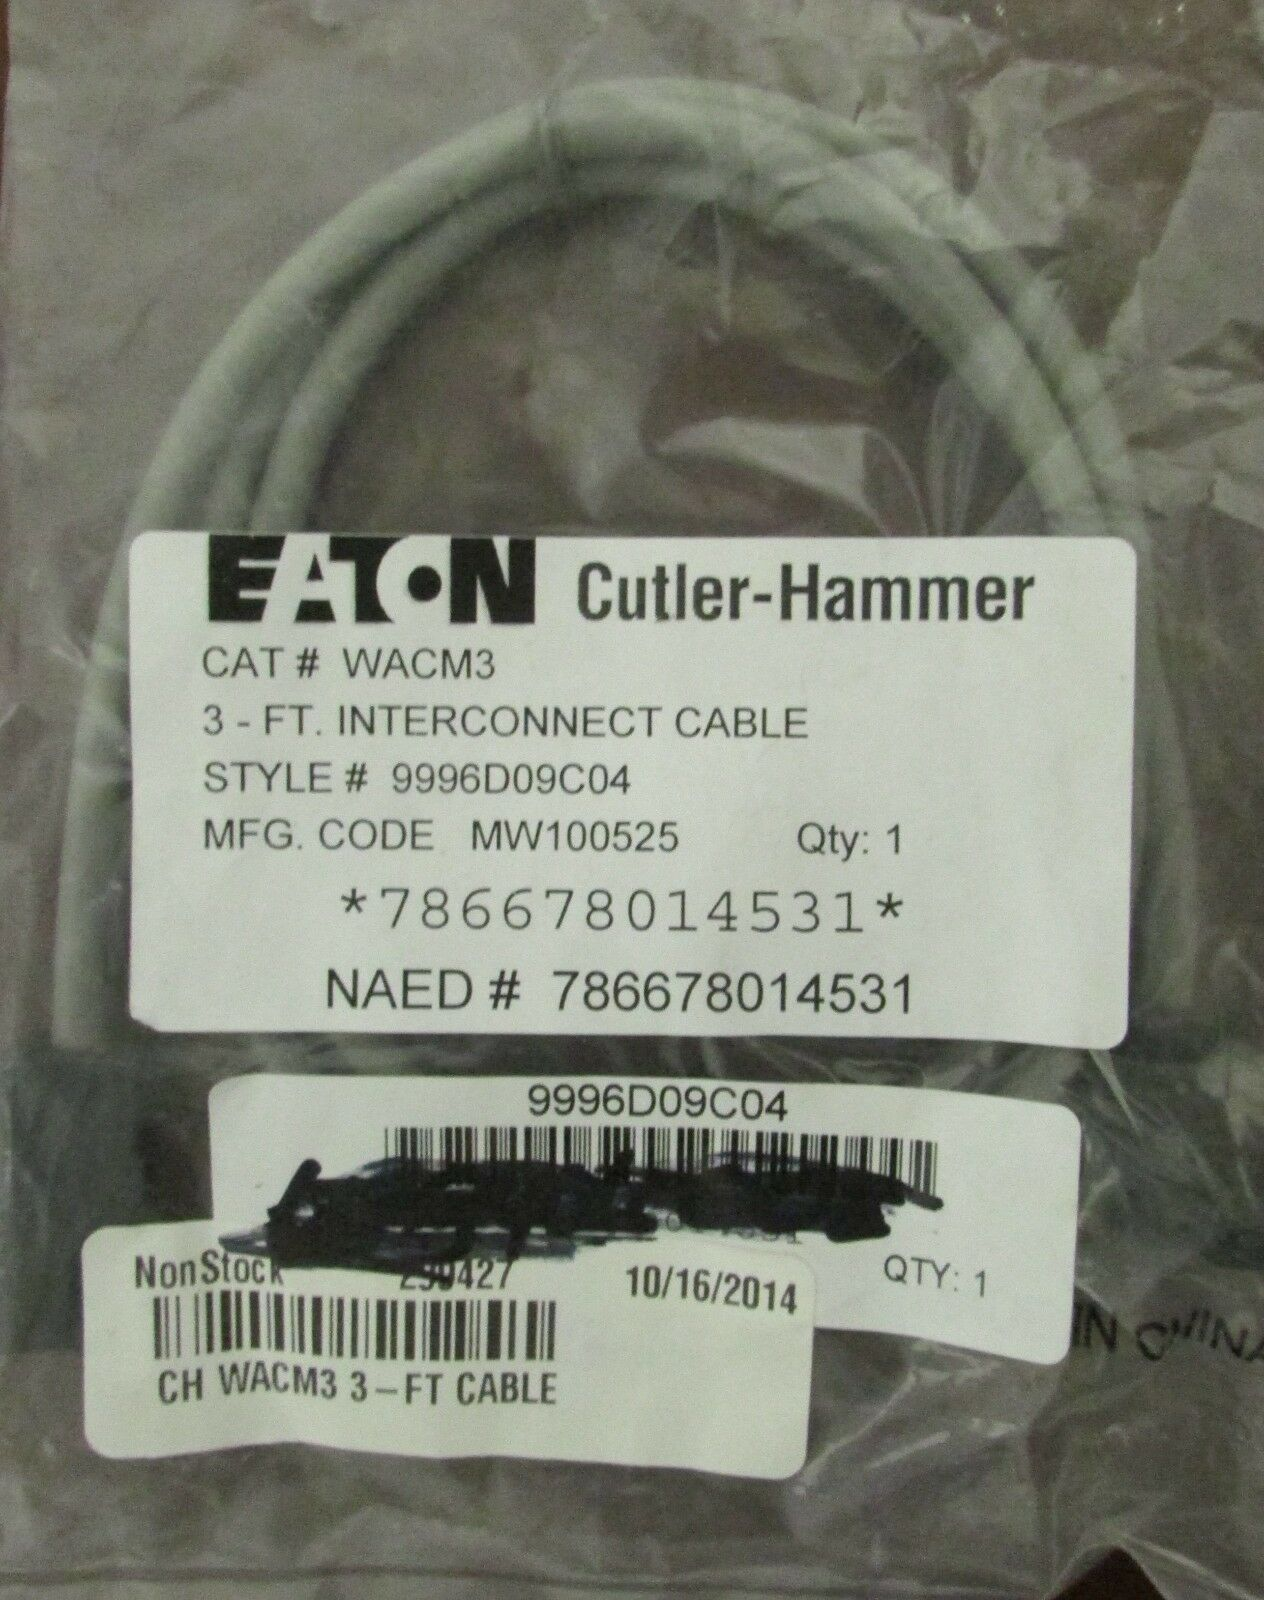 EATON CUTLER HAMMER WACM3 Advantage W200 Interconnect Cable 3 ft. 9996D09C04